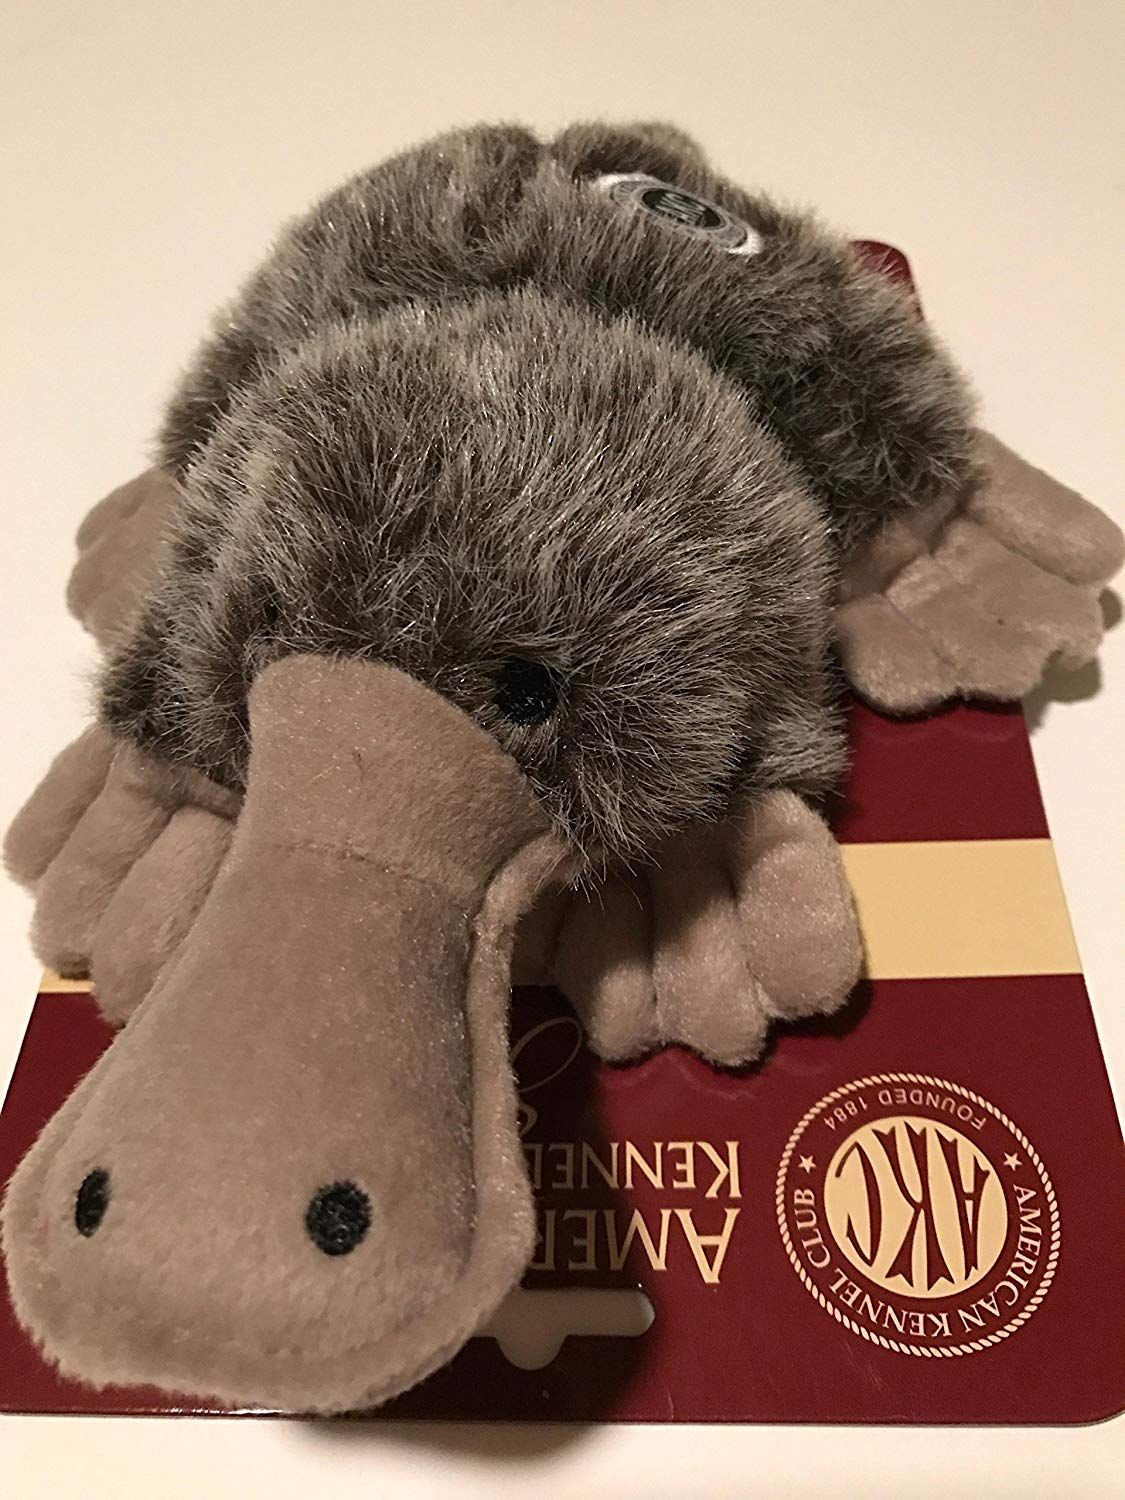 American Kennel Club Select Platypus Dog Toy See This Great